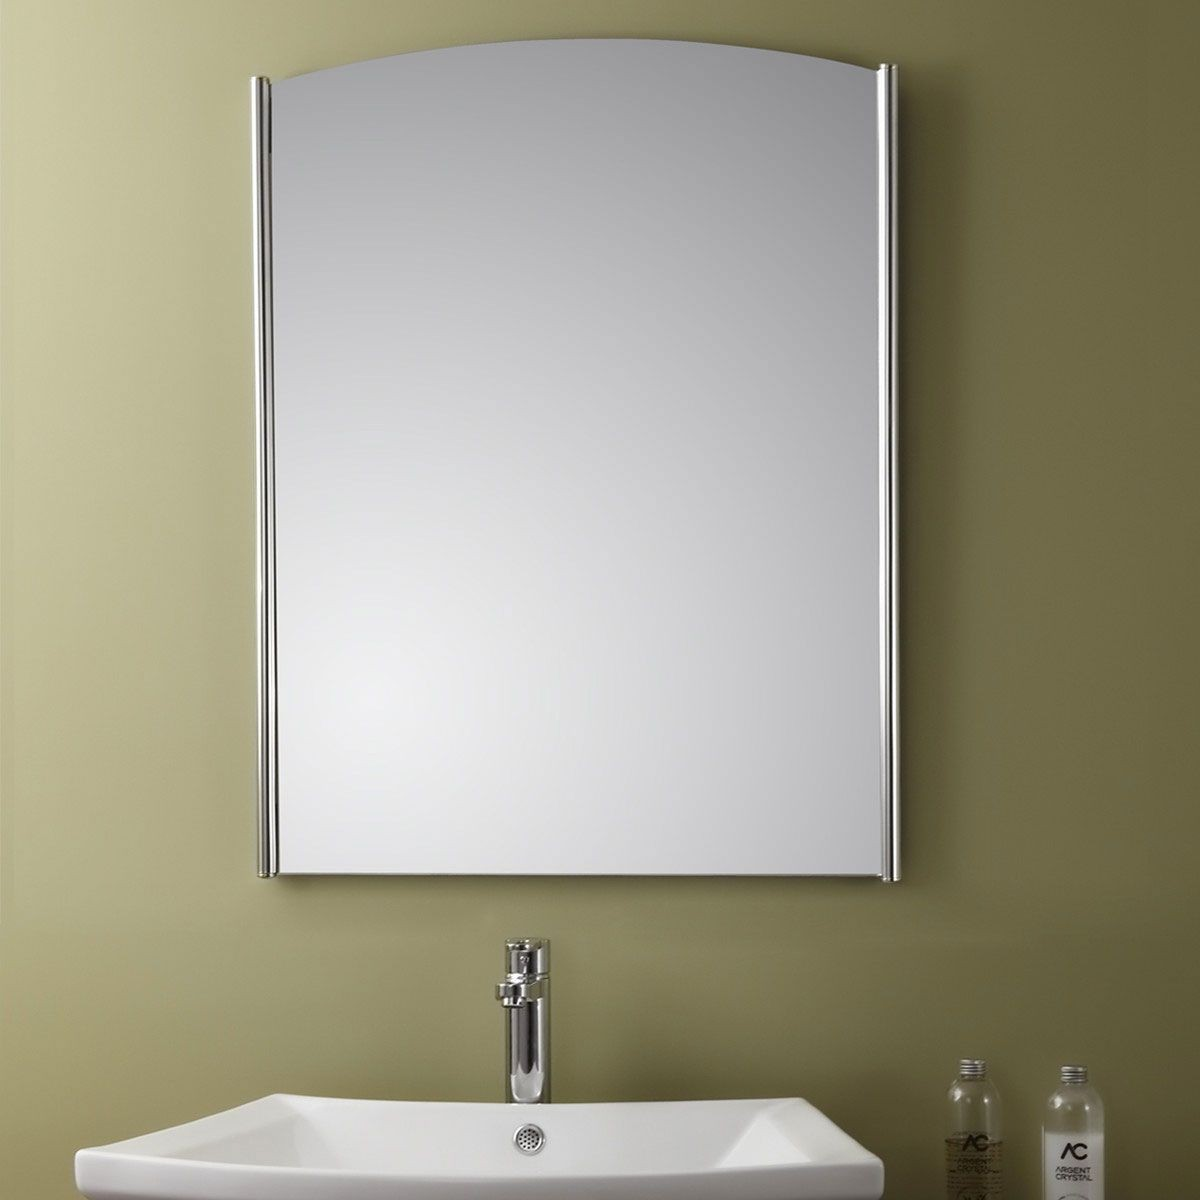 Vertical Stainless Steel Framed Bathroom Silvered Mirror/24 Inch x 30 Inch (YJ-26001H)